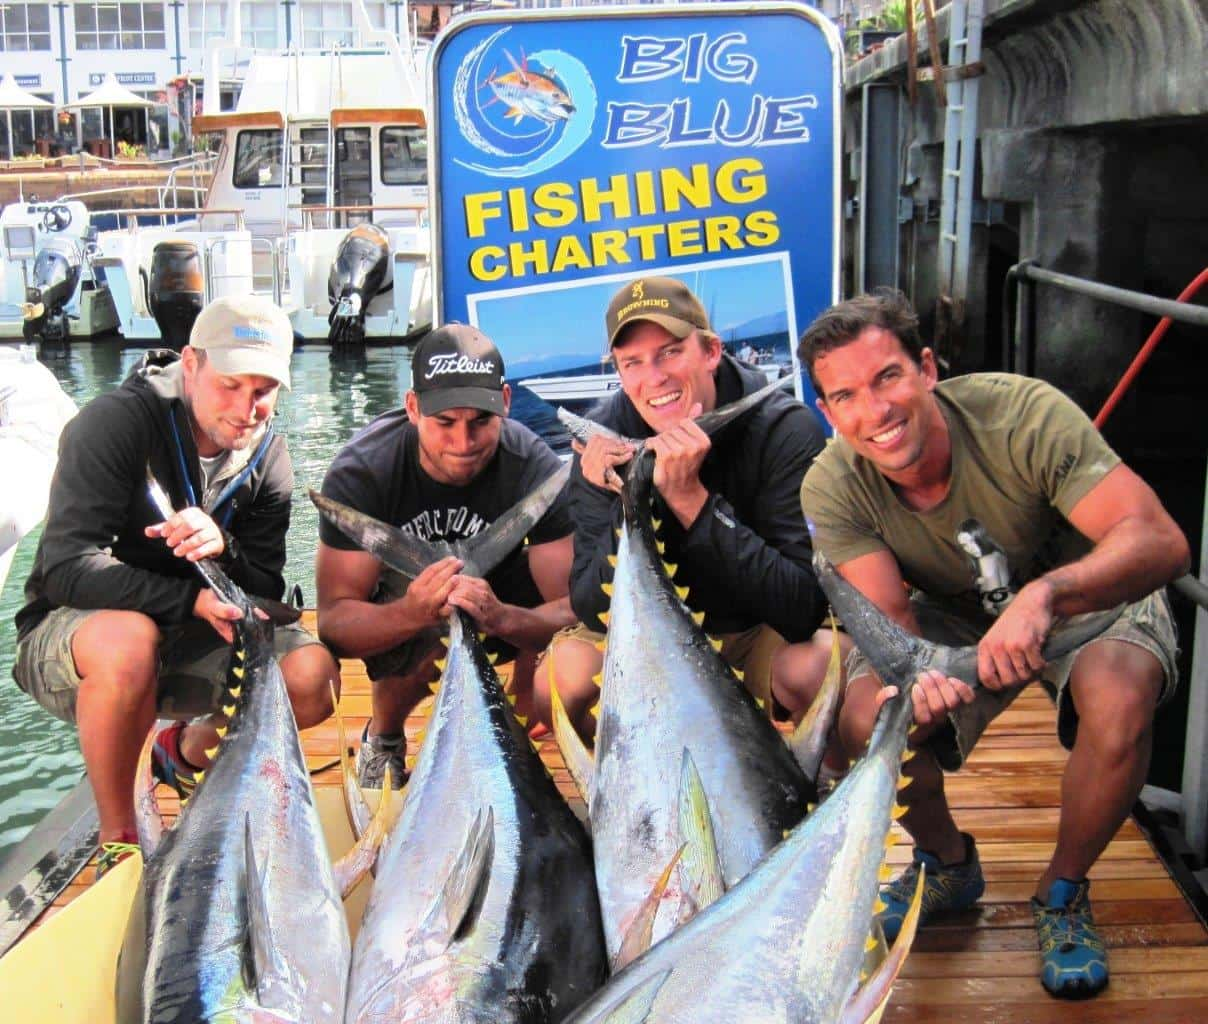 Big blue fishing charters cape town tourism for Big blue fish